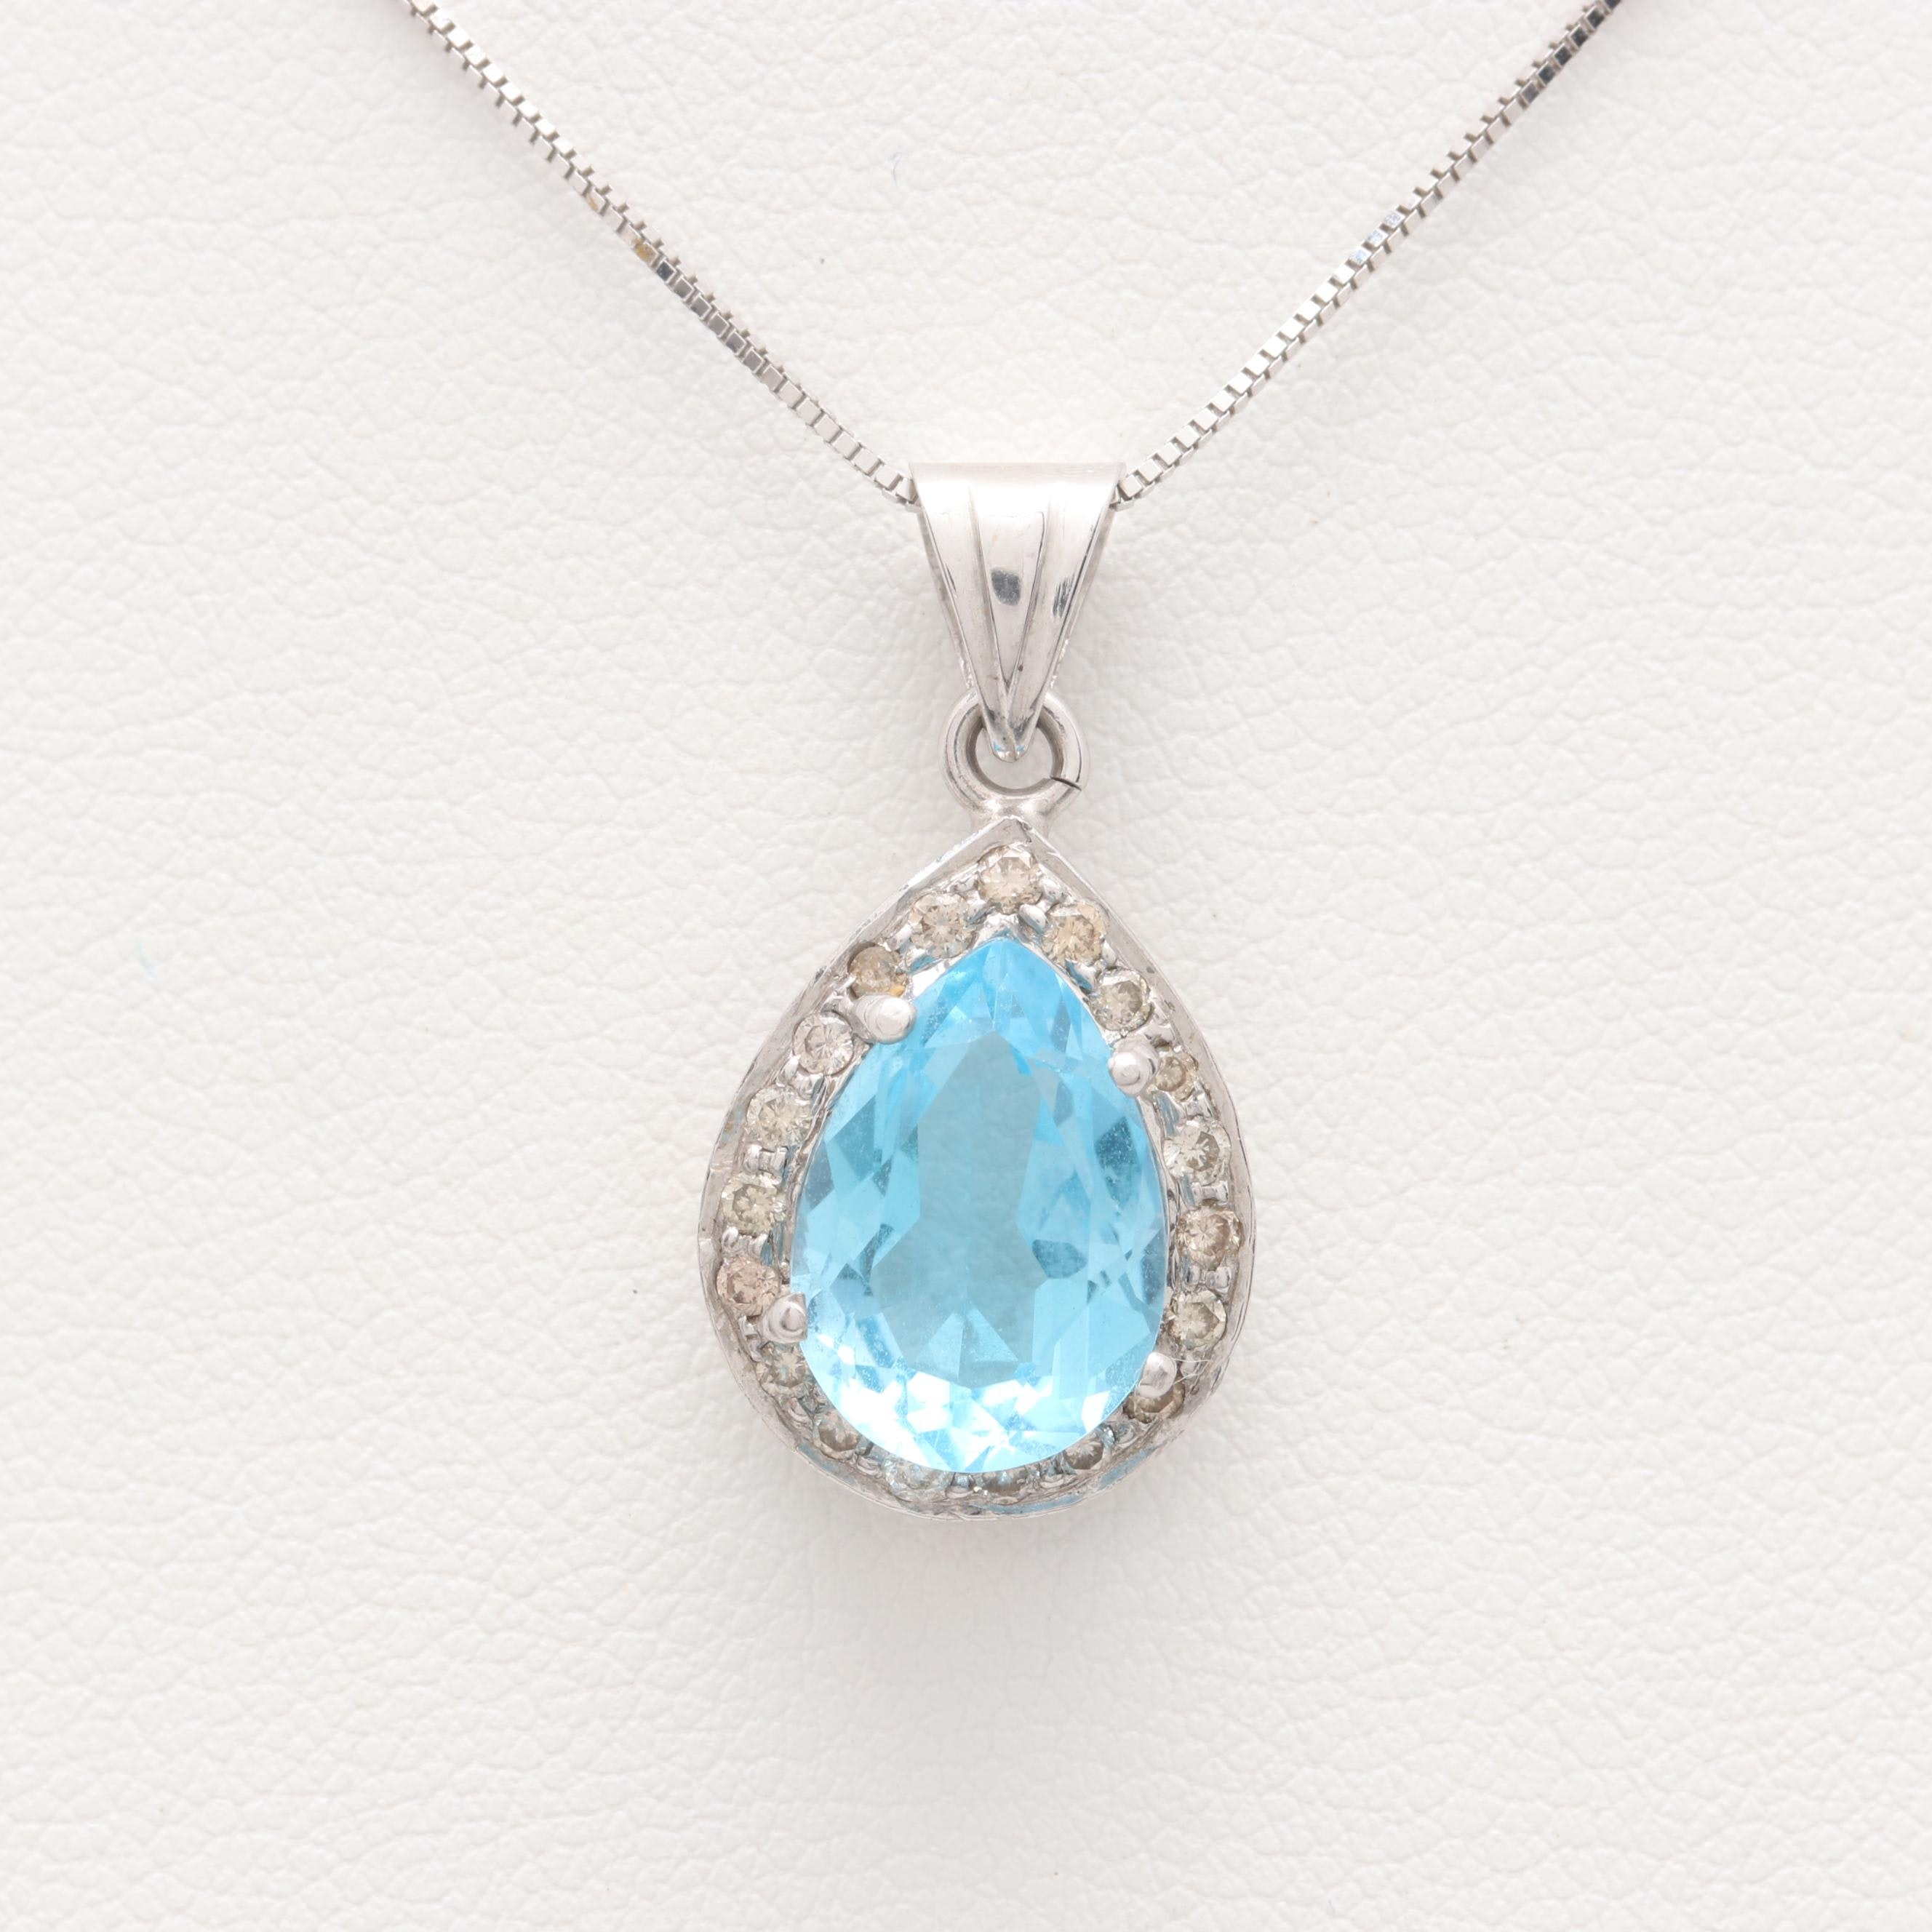 18K White Gold Blue Topaz and Diamond Pendant Necklace